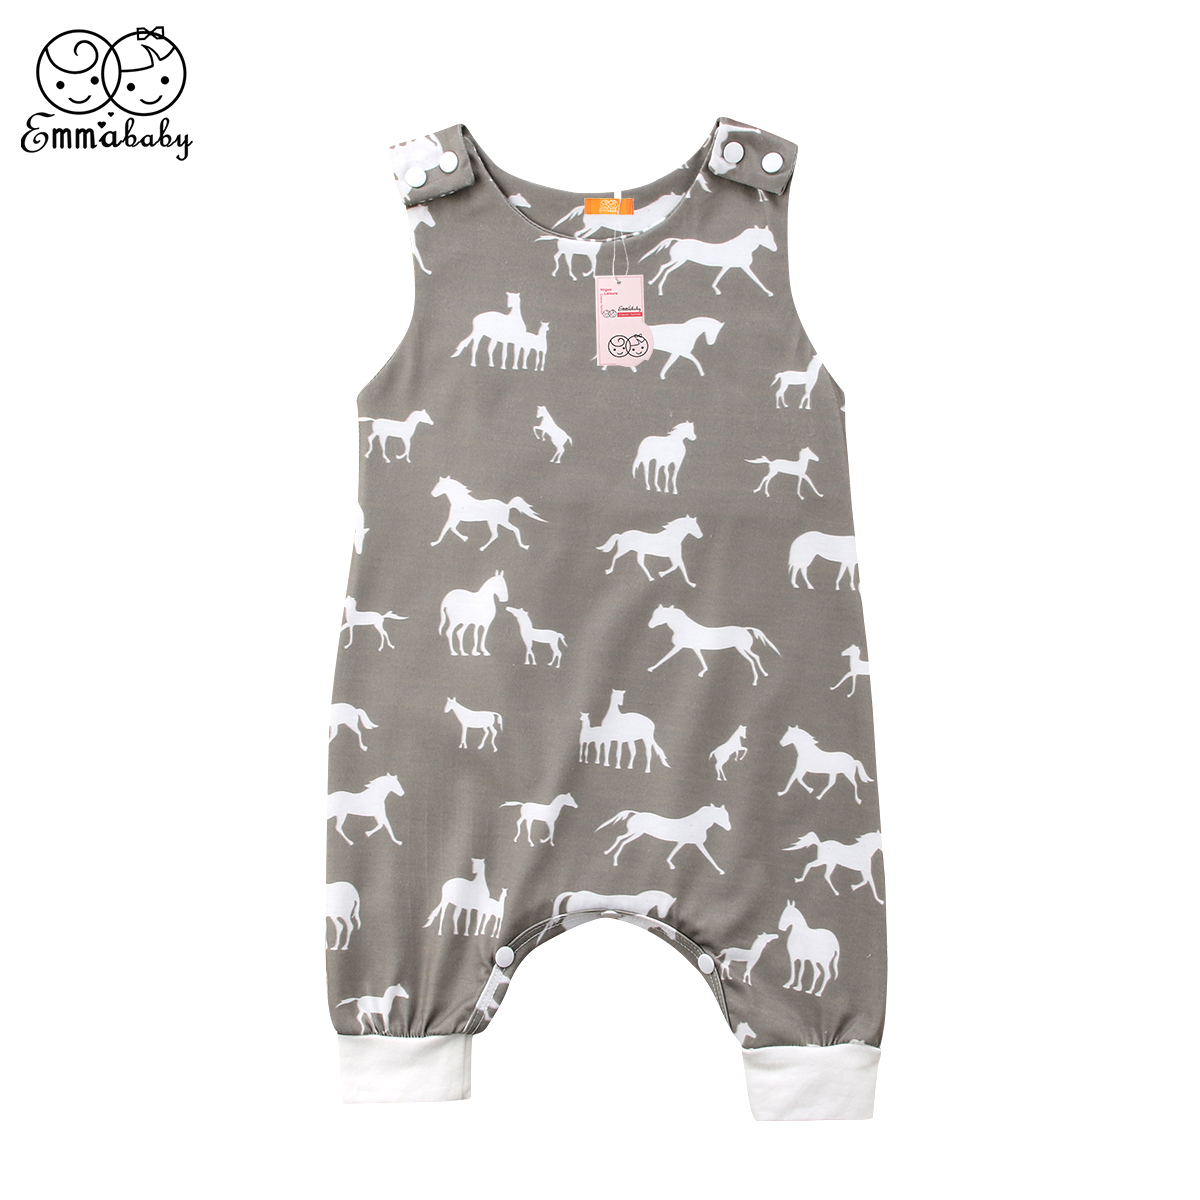 Newest Cute Baby Boy Girl Romper Summer Sleeveless Horse Pattern Jumpsuit Short Pants Kids Sunsuit One-Piece Baby Clothes fashionable scoop neck green leopard pattern sleeveless romper for women